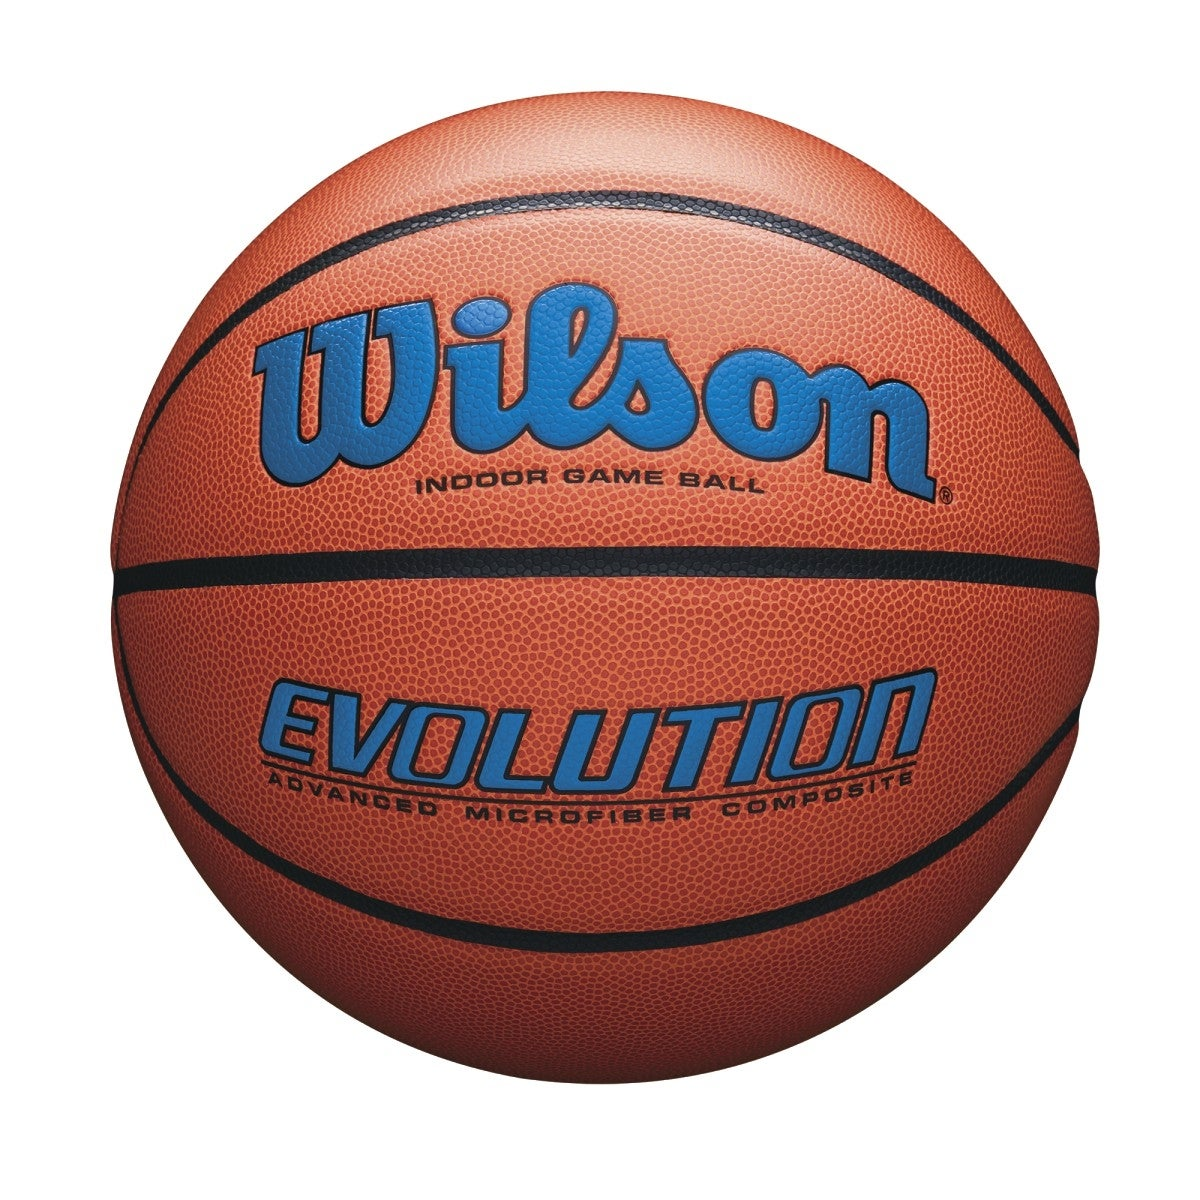 Evolution Game Ball - Royal (29.5